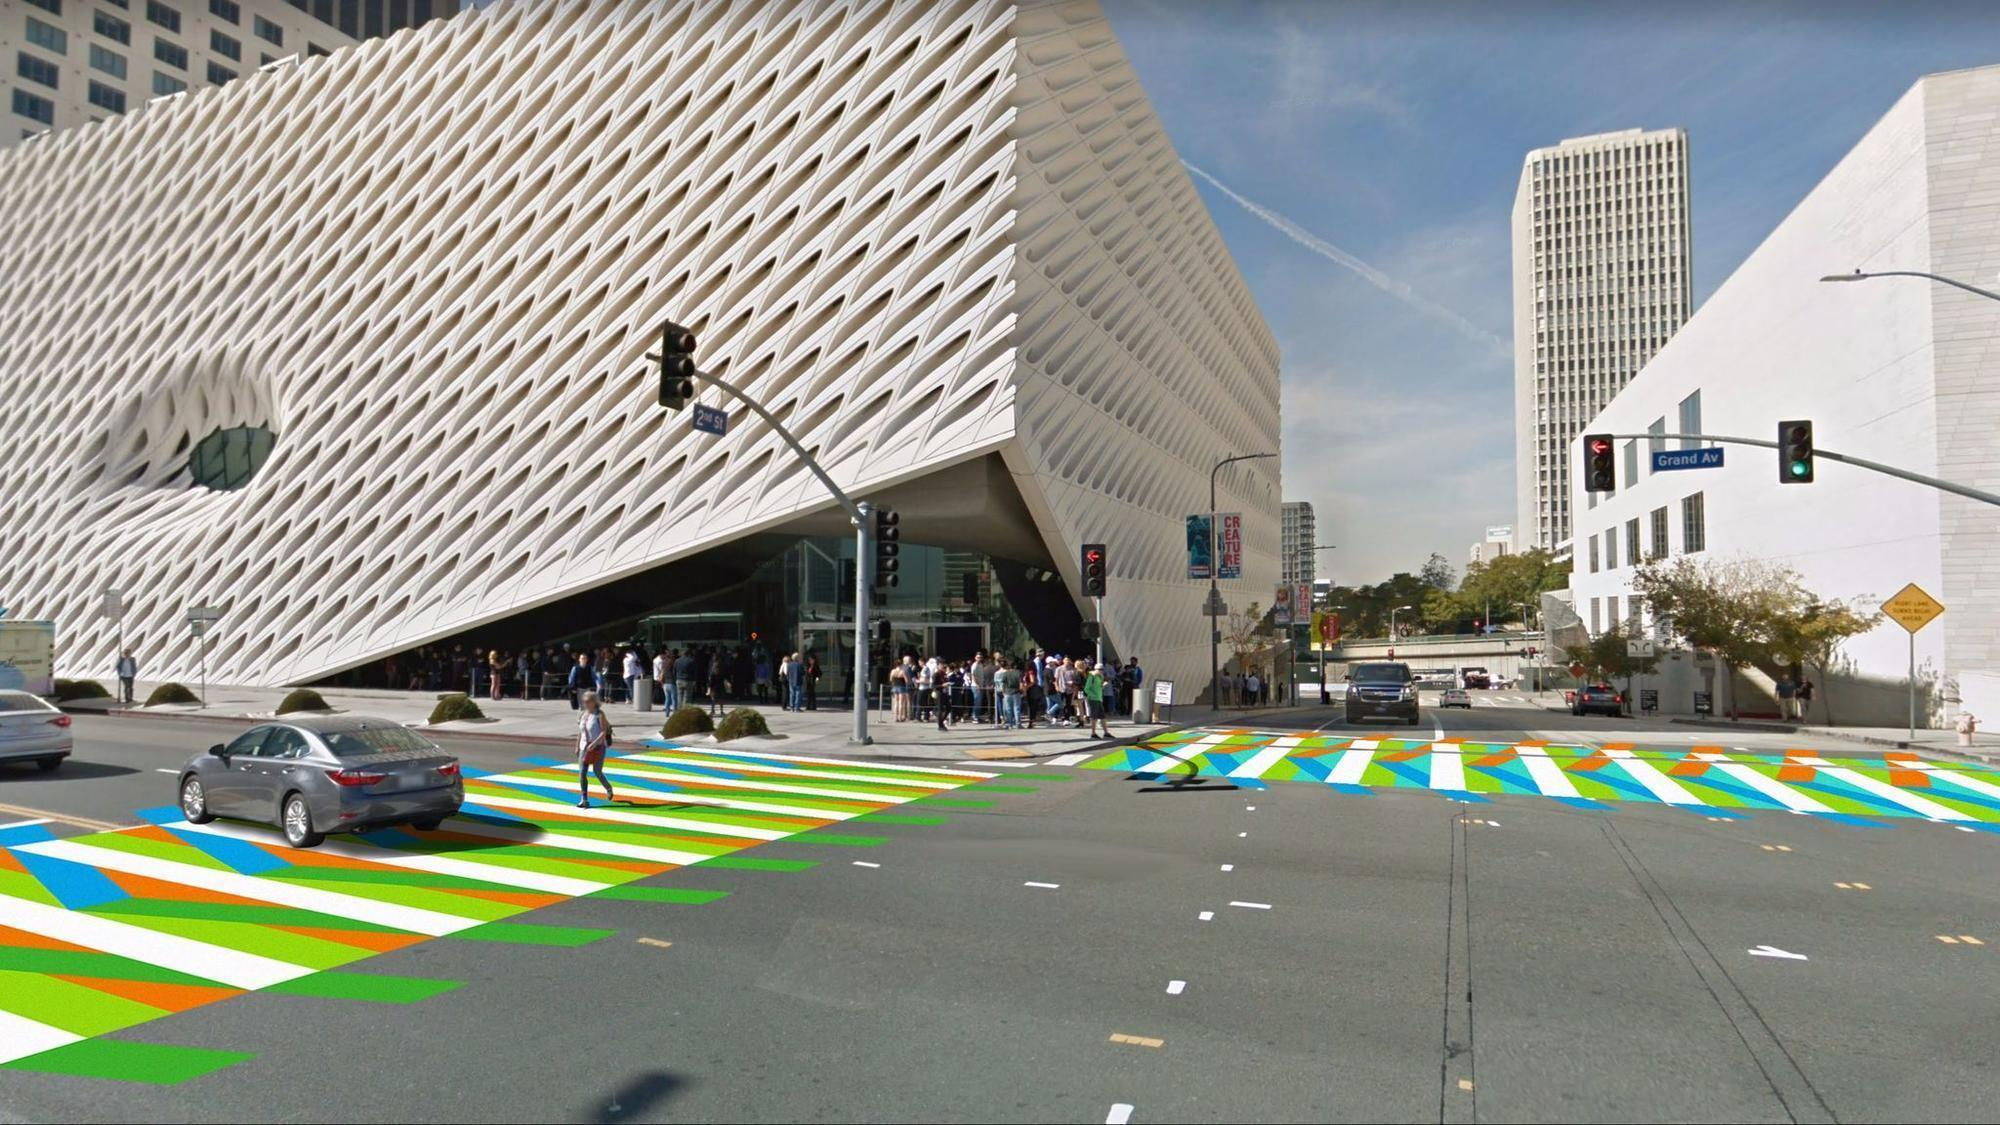 Color car los angeles - Grand Avenue Is Getting Color Artist Carlos Cruz Diez S Street Installation At The Broad For Pst La La La Times